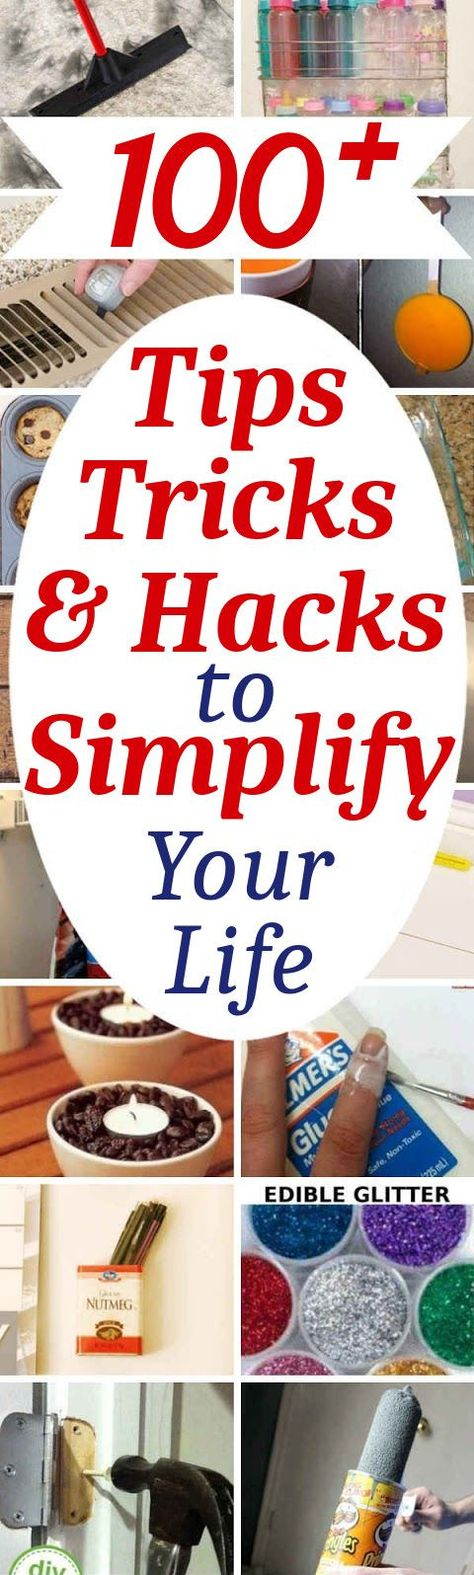 102 Tips, Tricks, & Hacks To Simplify Your Life